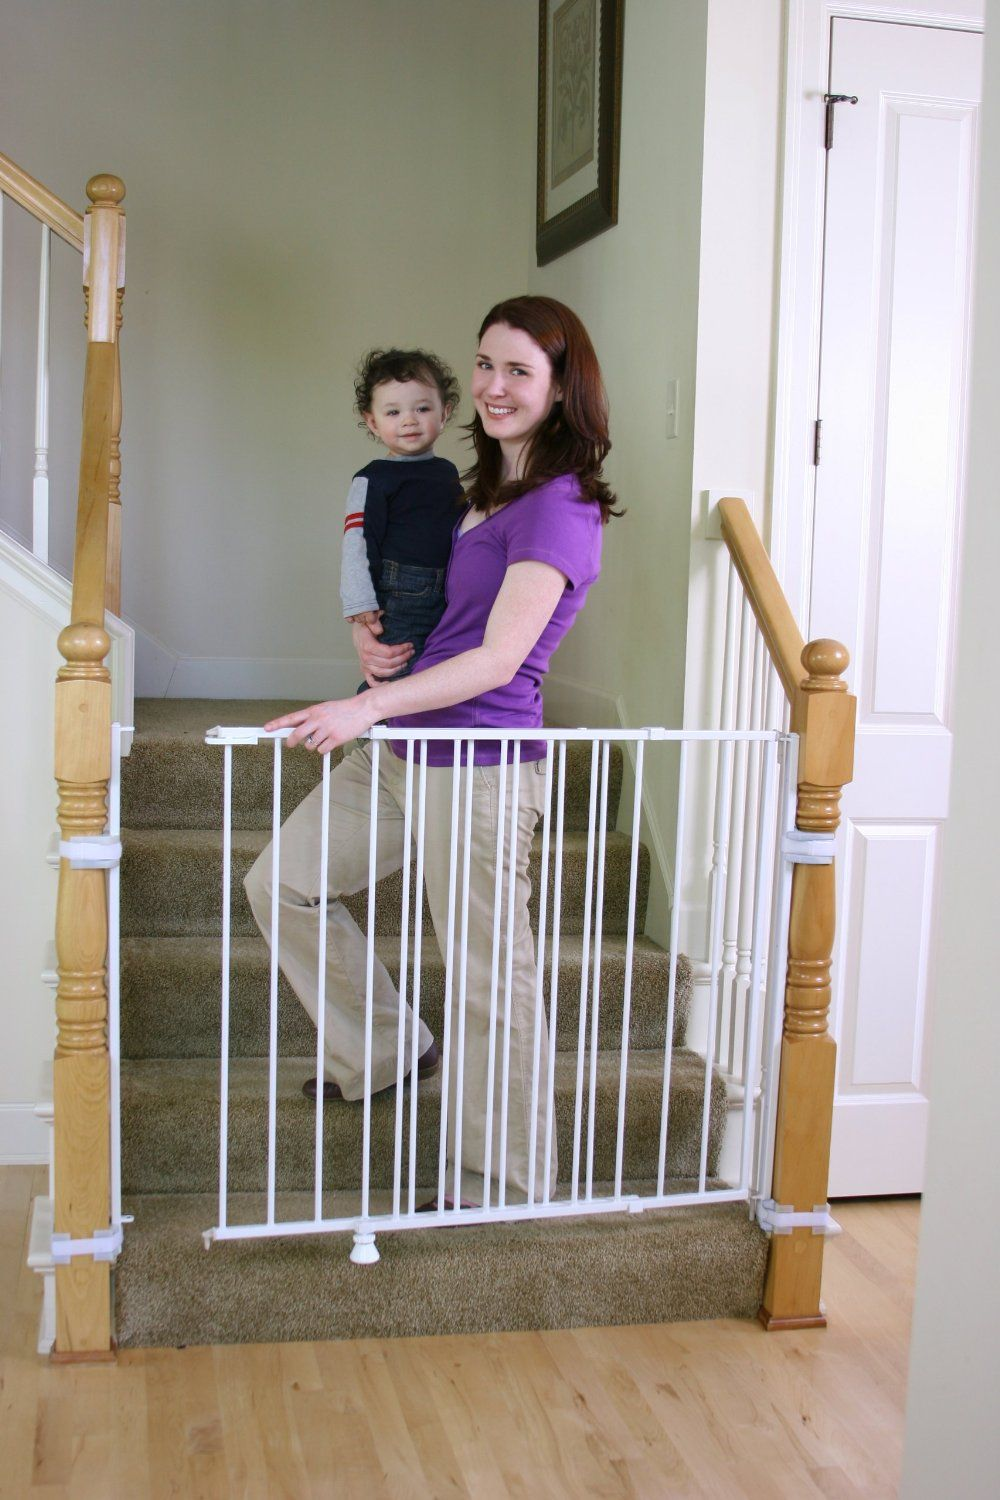 Safety Gates Are Designed To Keep The Child Safe Click To Tweet